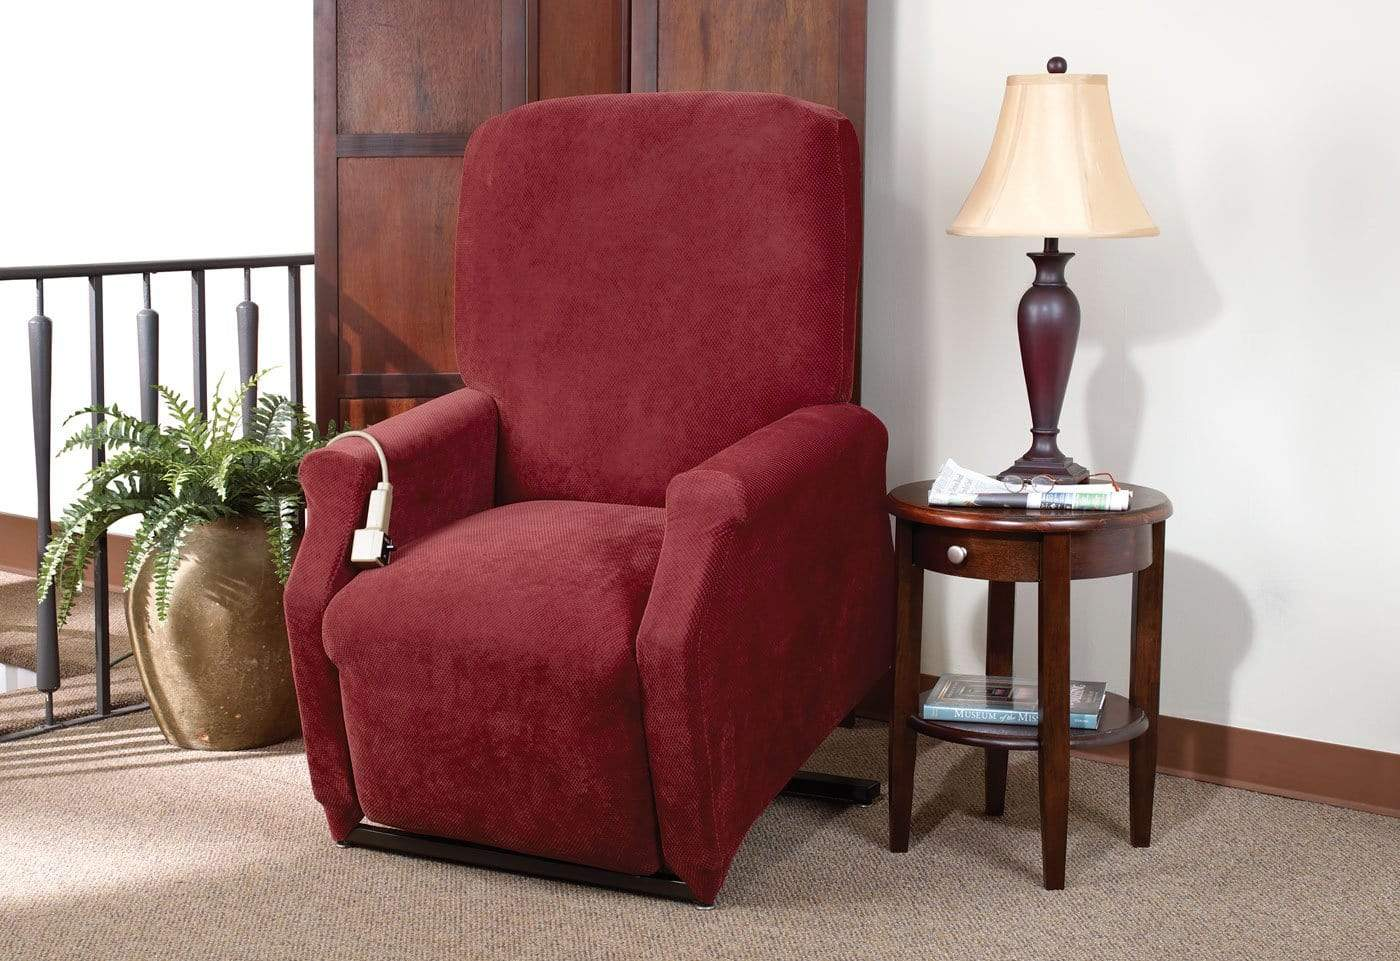 Stretch Piqué One Piece Medium Lift Recliner Slipcover - Final Sale - Medium Lift Recliner / Garnet